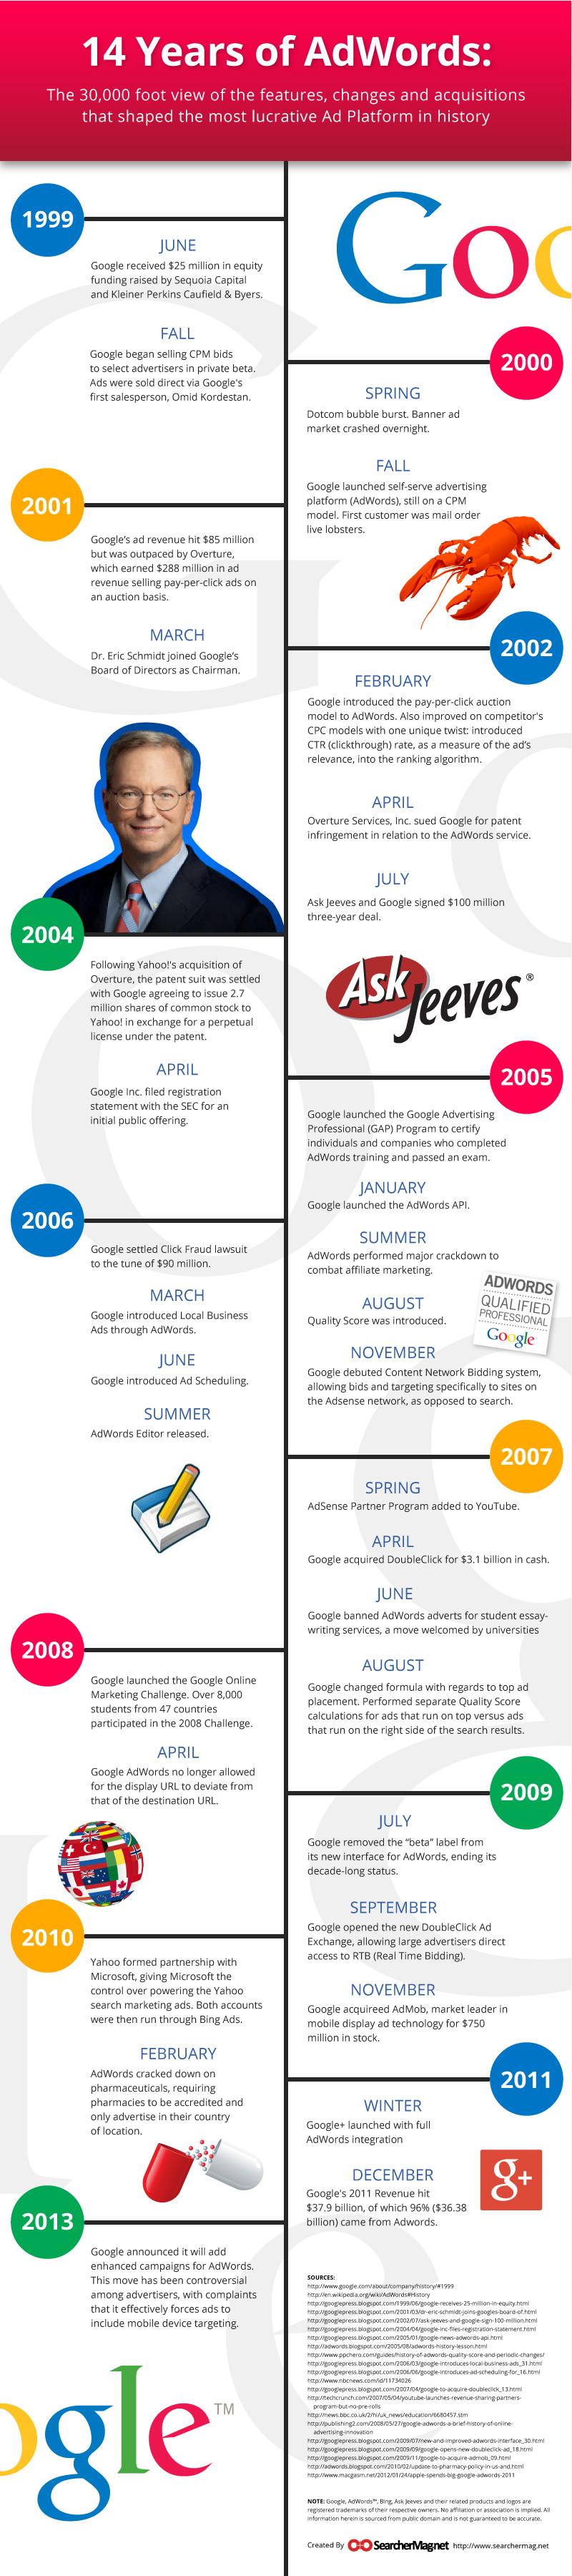 infographic hoa final A Look Back at the History of Adwords [Infographic]